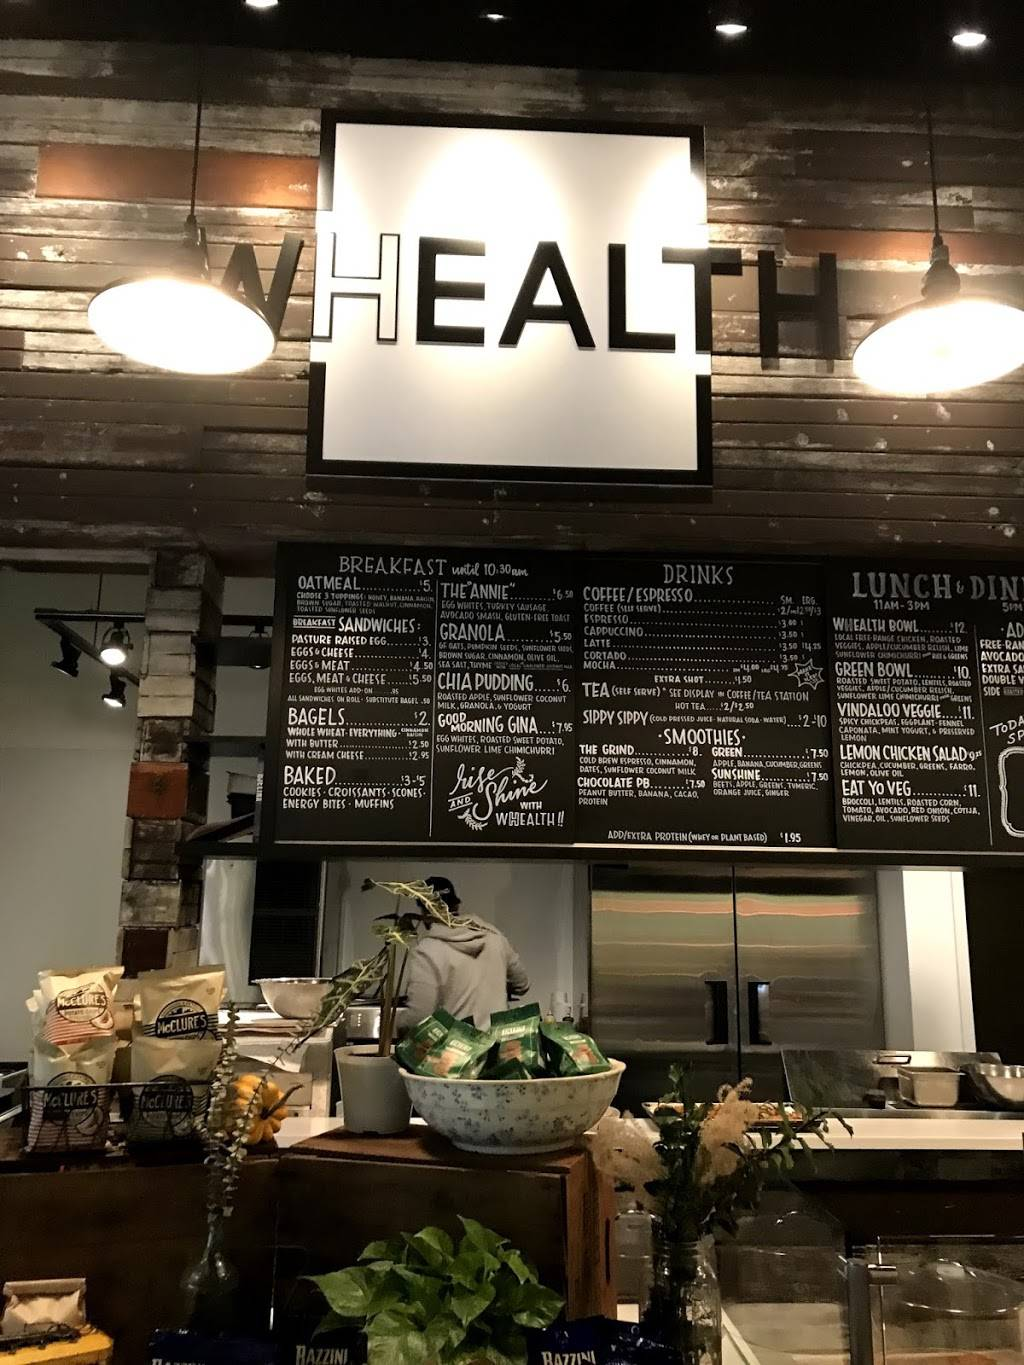 Whealth | restaurant | 615 Pavonia Ave, Jersey City, NJ 07306, USA | 2017955188 OR +1 201-795-5188